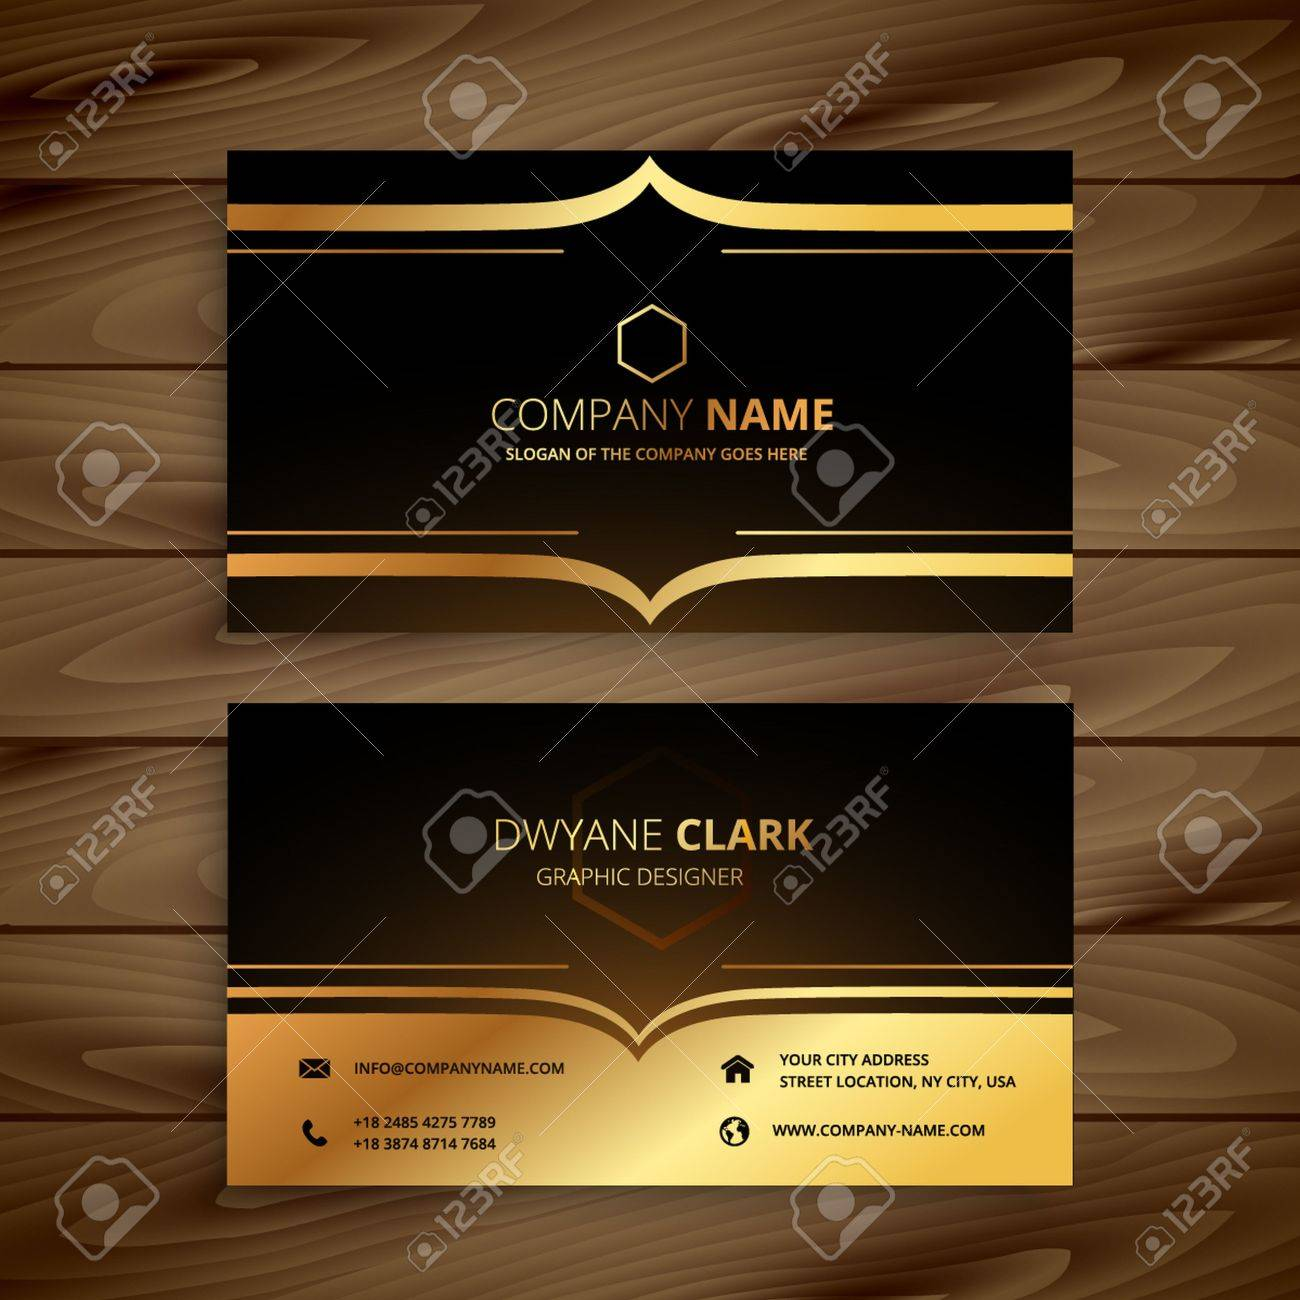 Luxury Business Card Royalty Free Cliparts, Vectors, And Stock ...